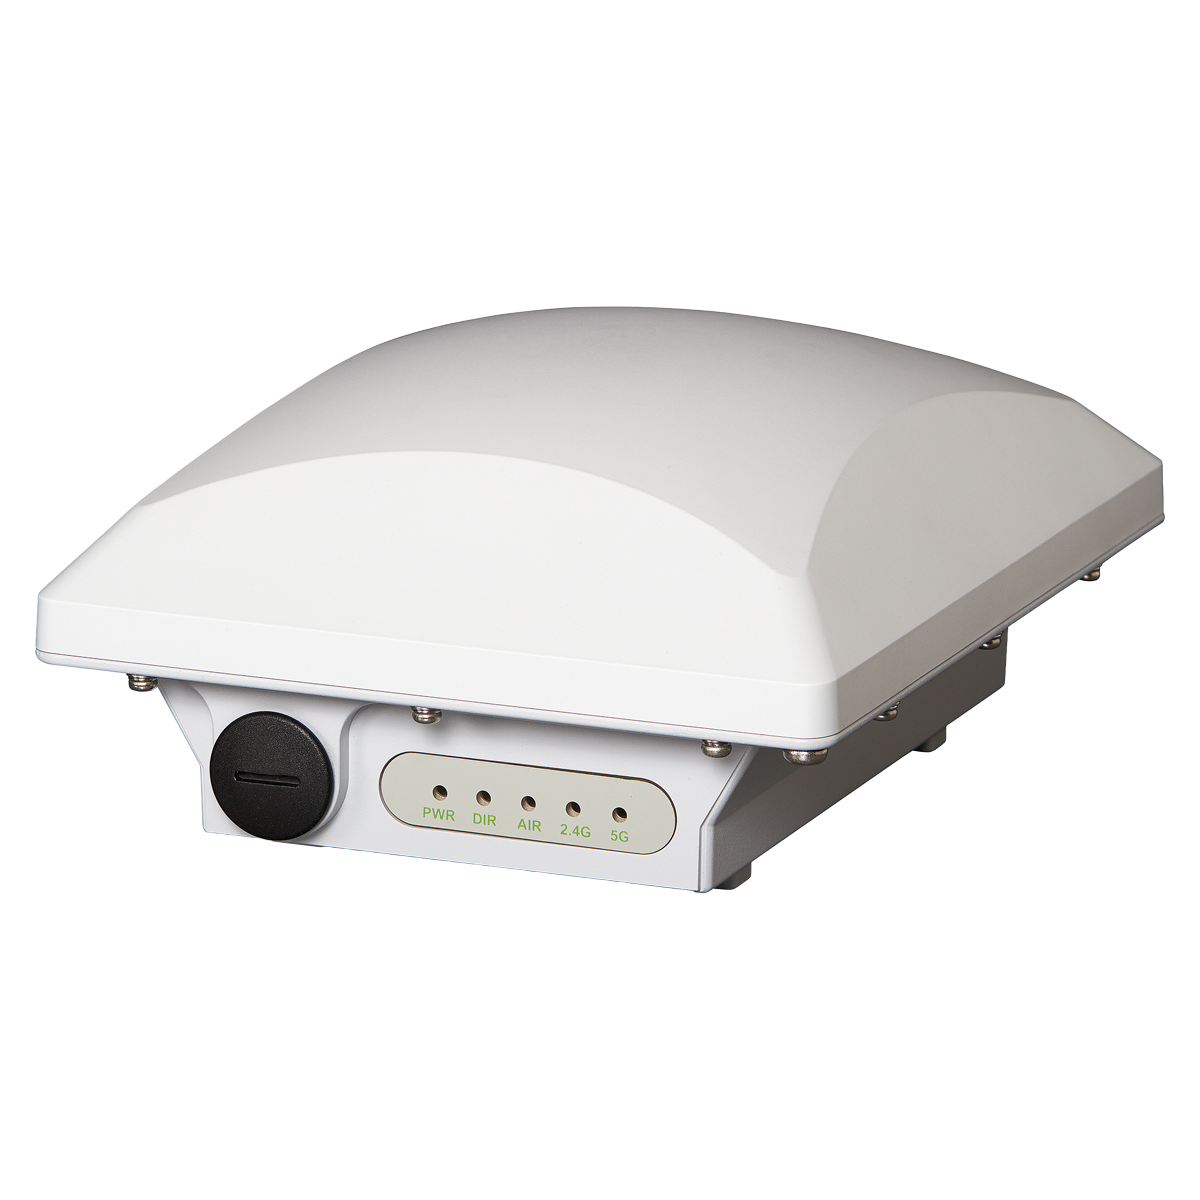 Ruckus ZoneFlex T301 Smart Wi-Fi Outdoor Access Points For Directed Coverage